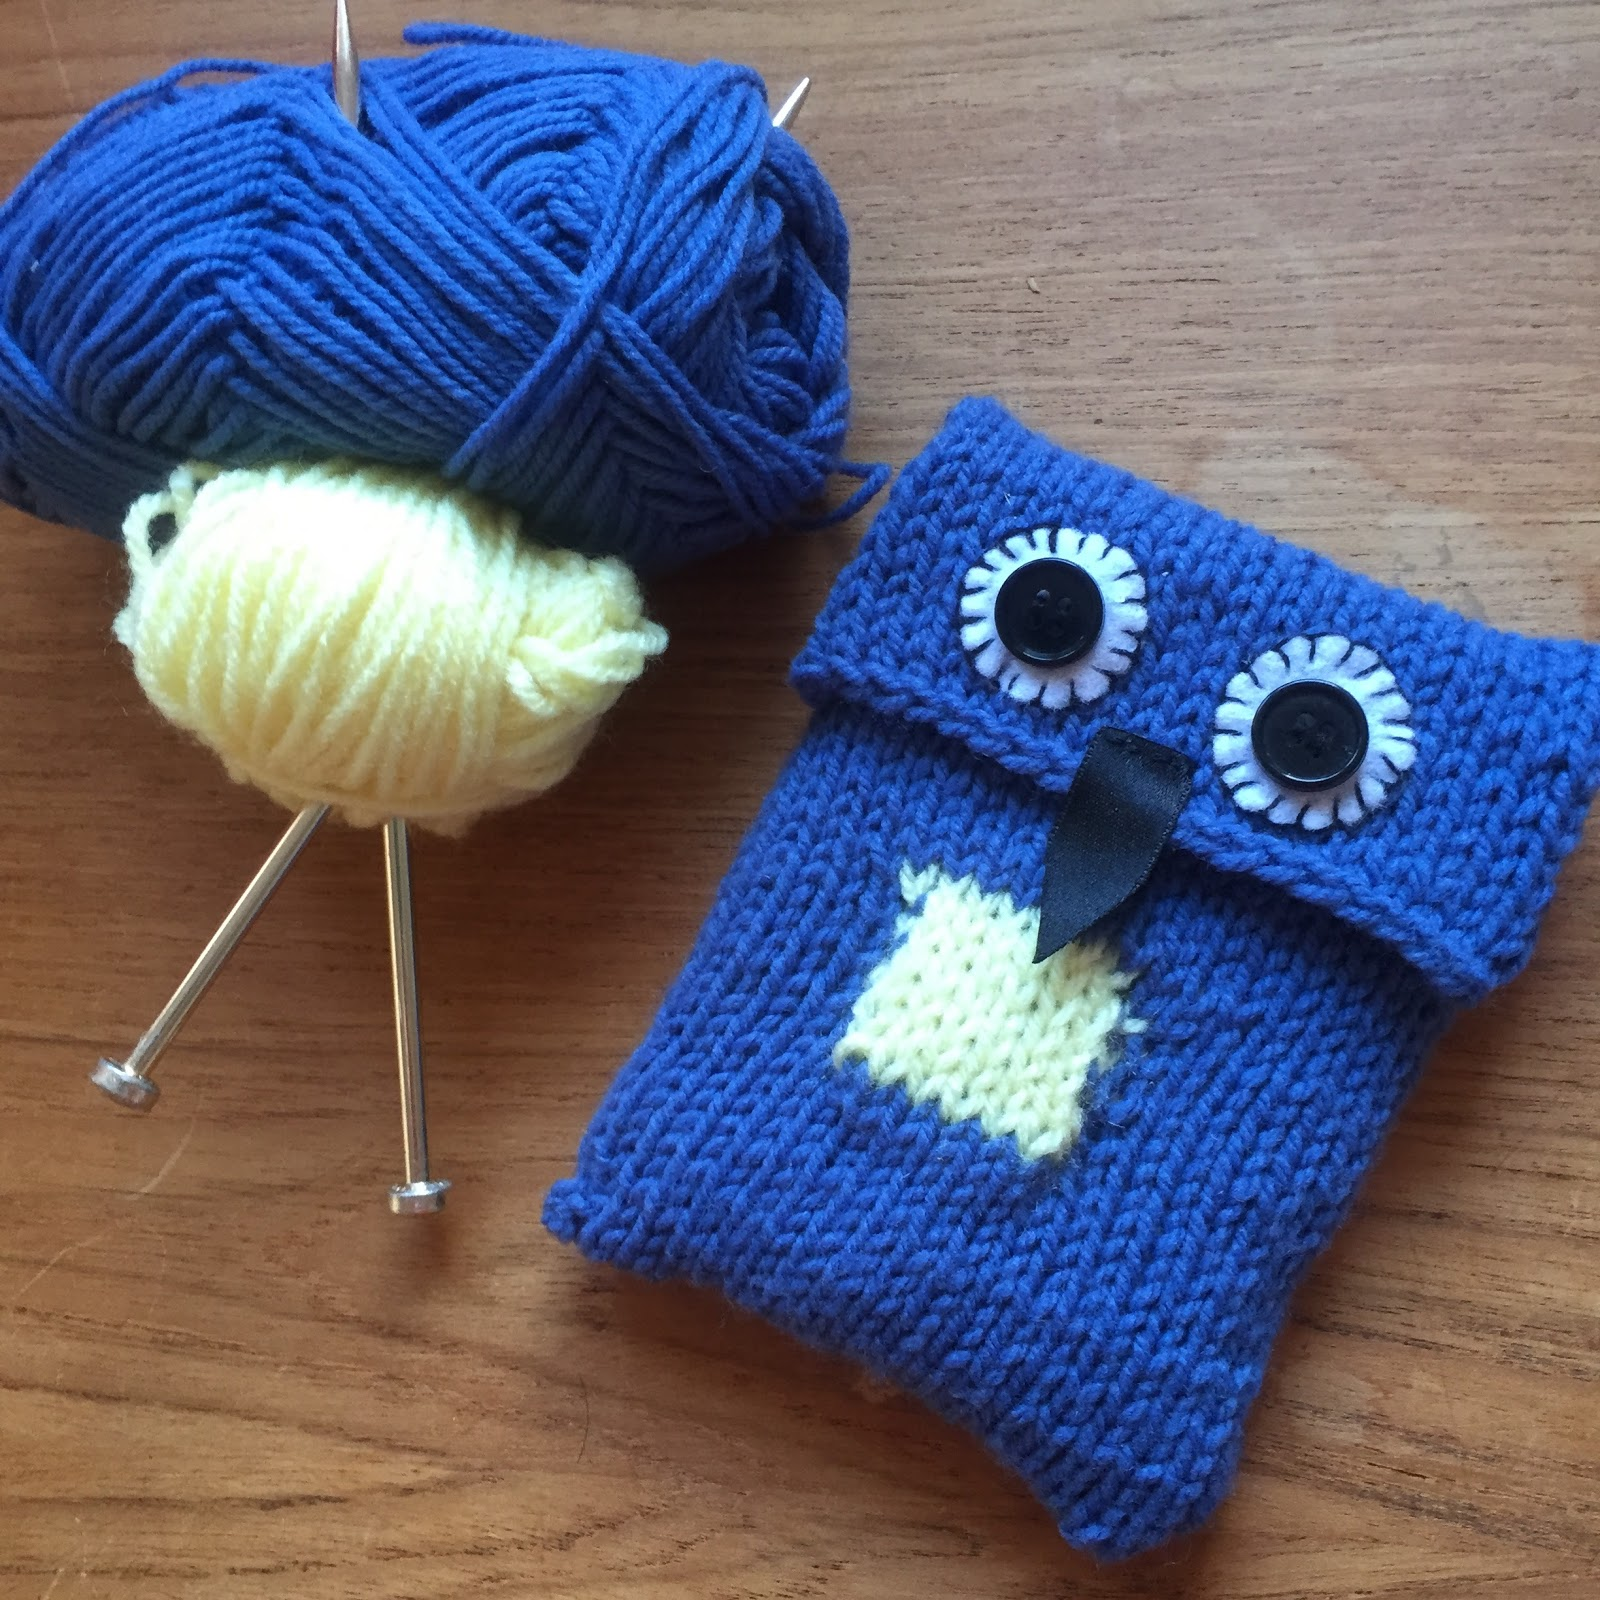 Knitted Blue Owl Cover for Portable Hard Drive | Garden, Tea, Cakes ...